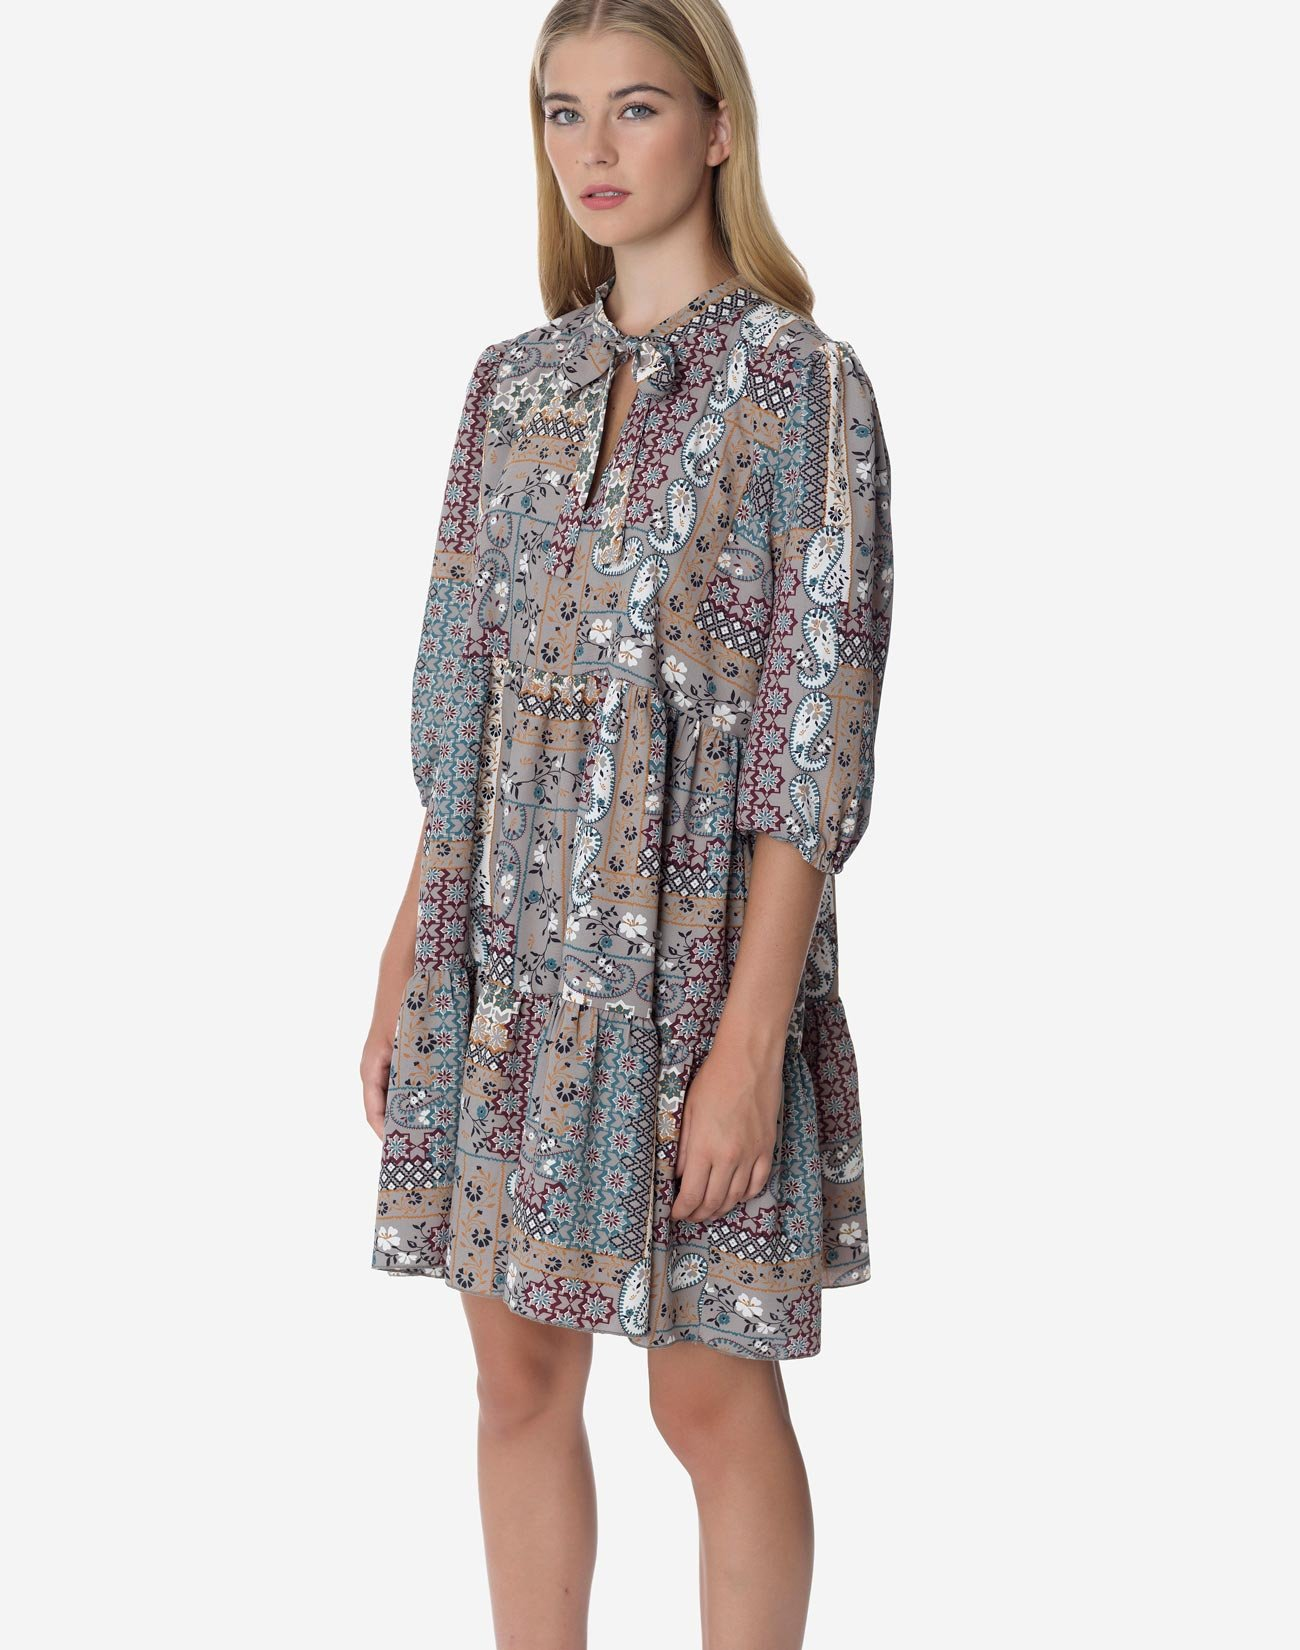 Printed mini dress with tie